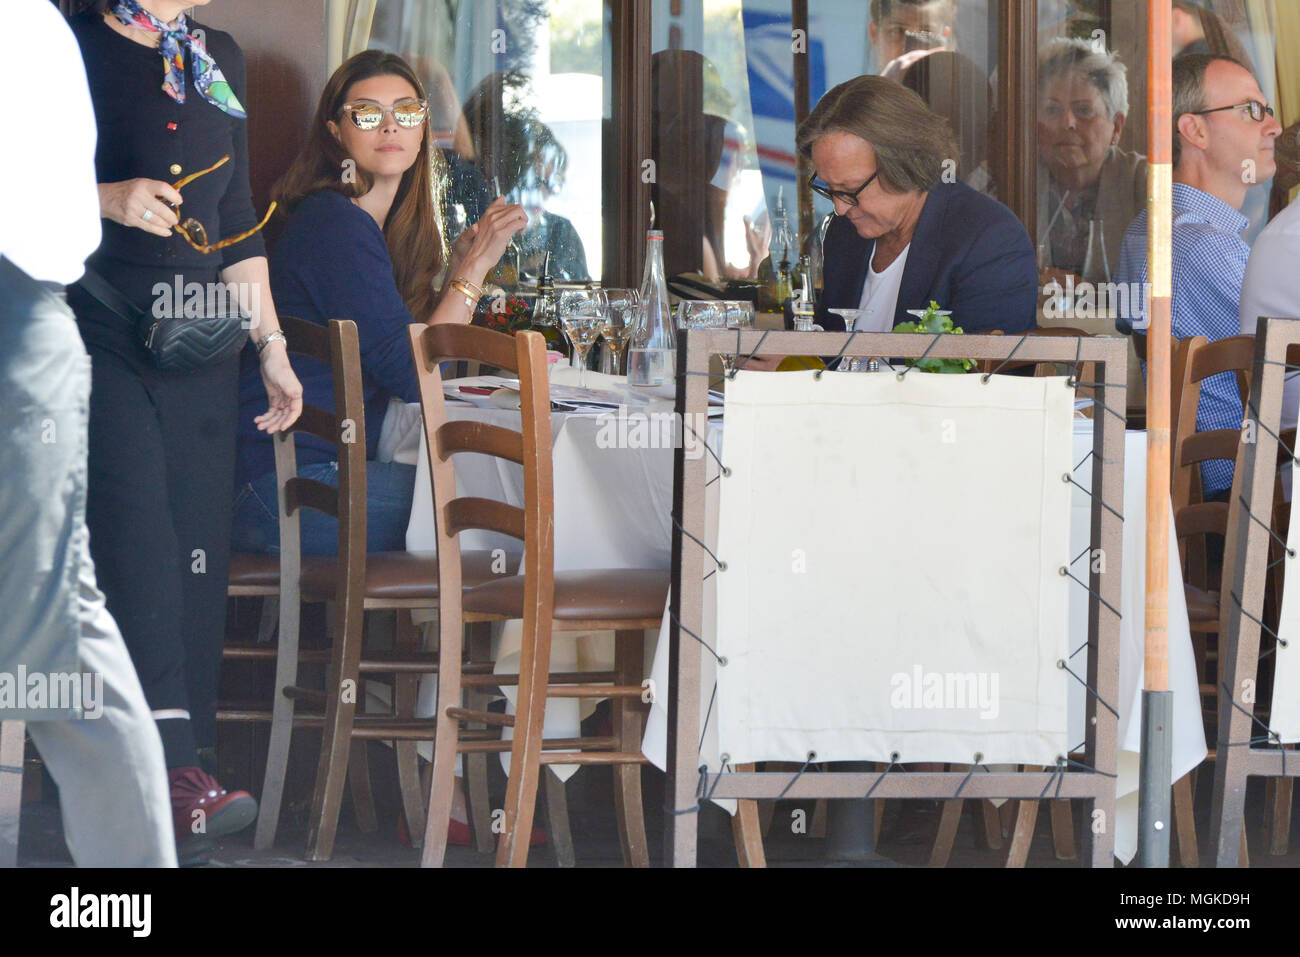 Mohamed Hadid And His Girlfriend Shiva Safai At Il Pastaio